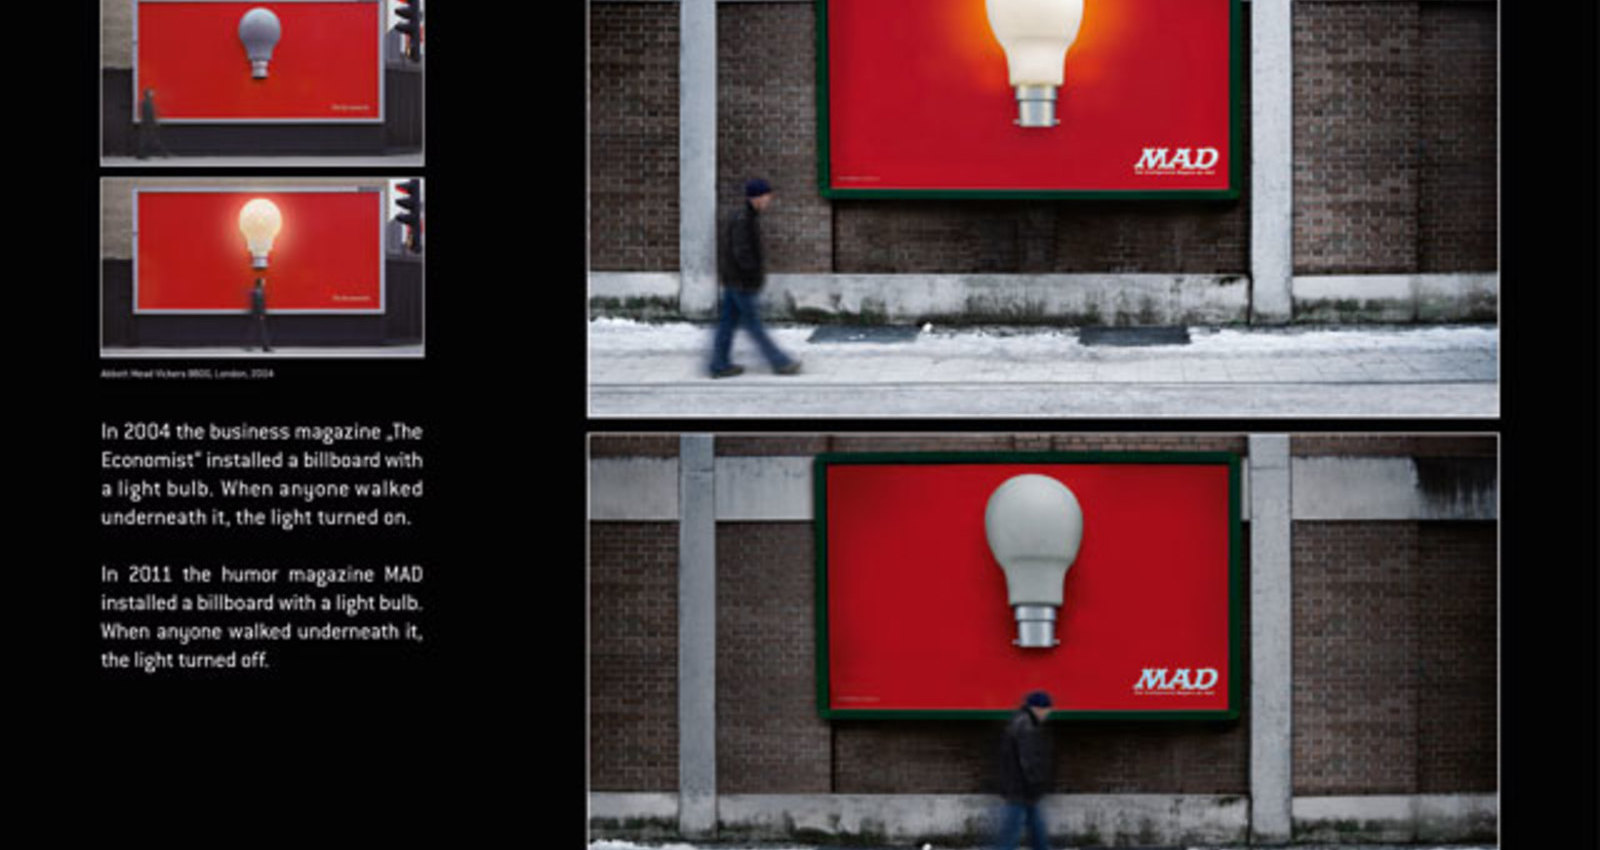 MAD light bulb